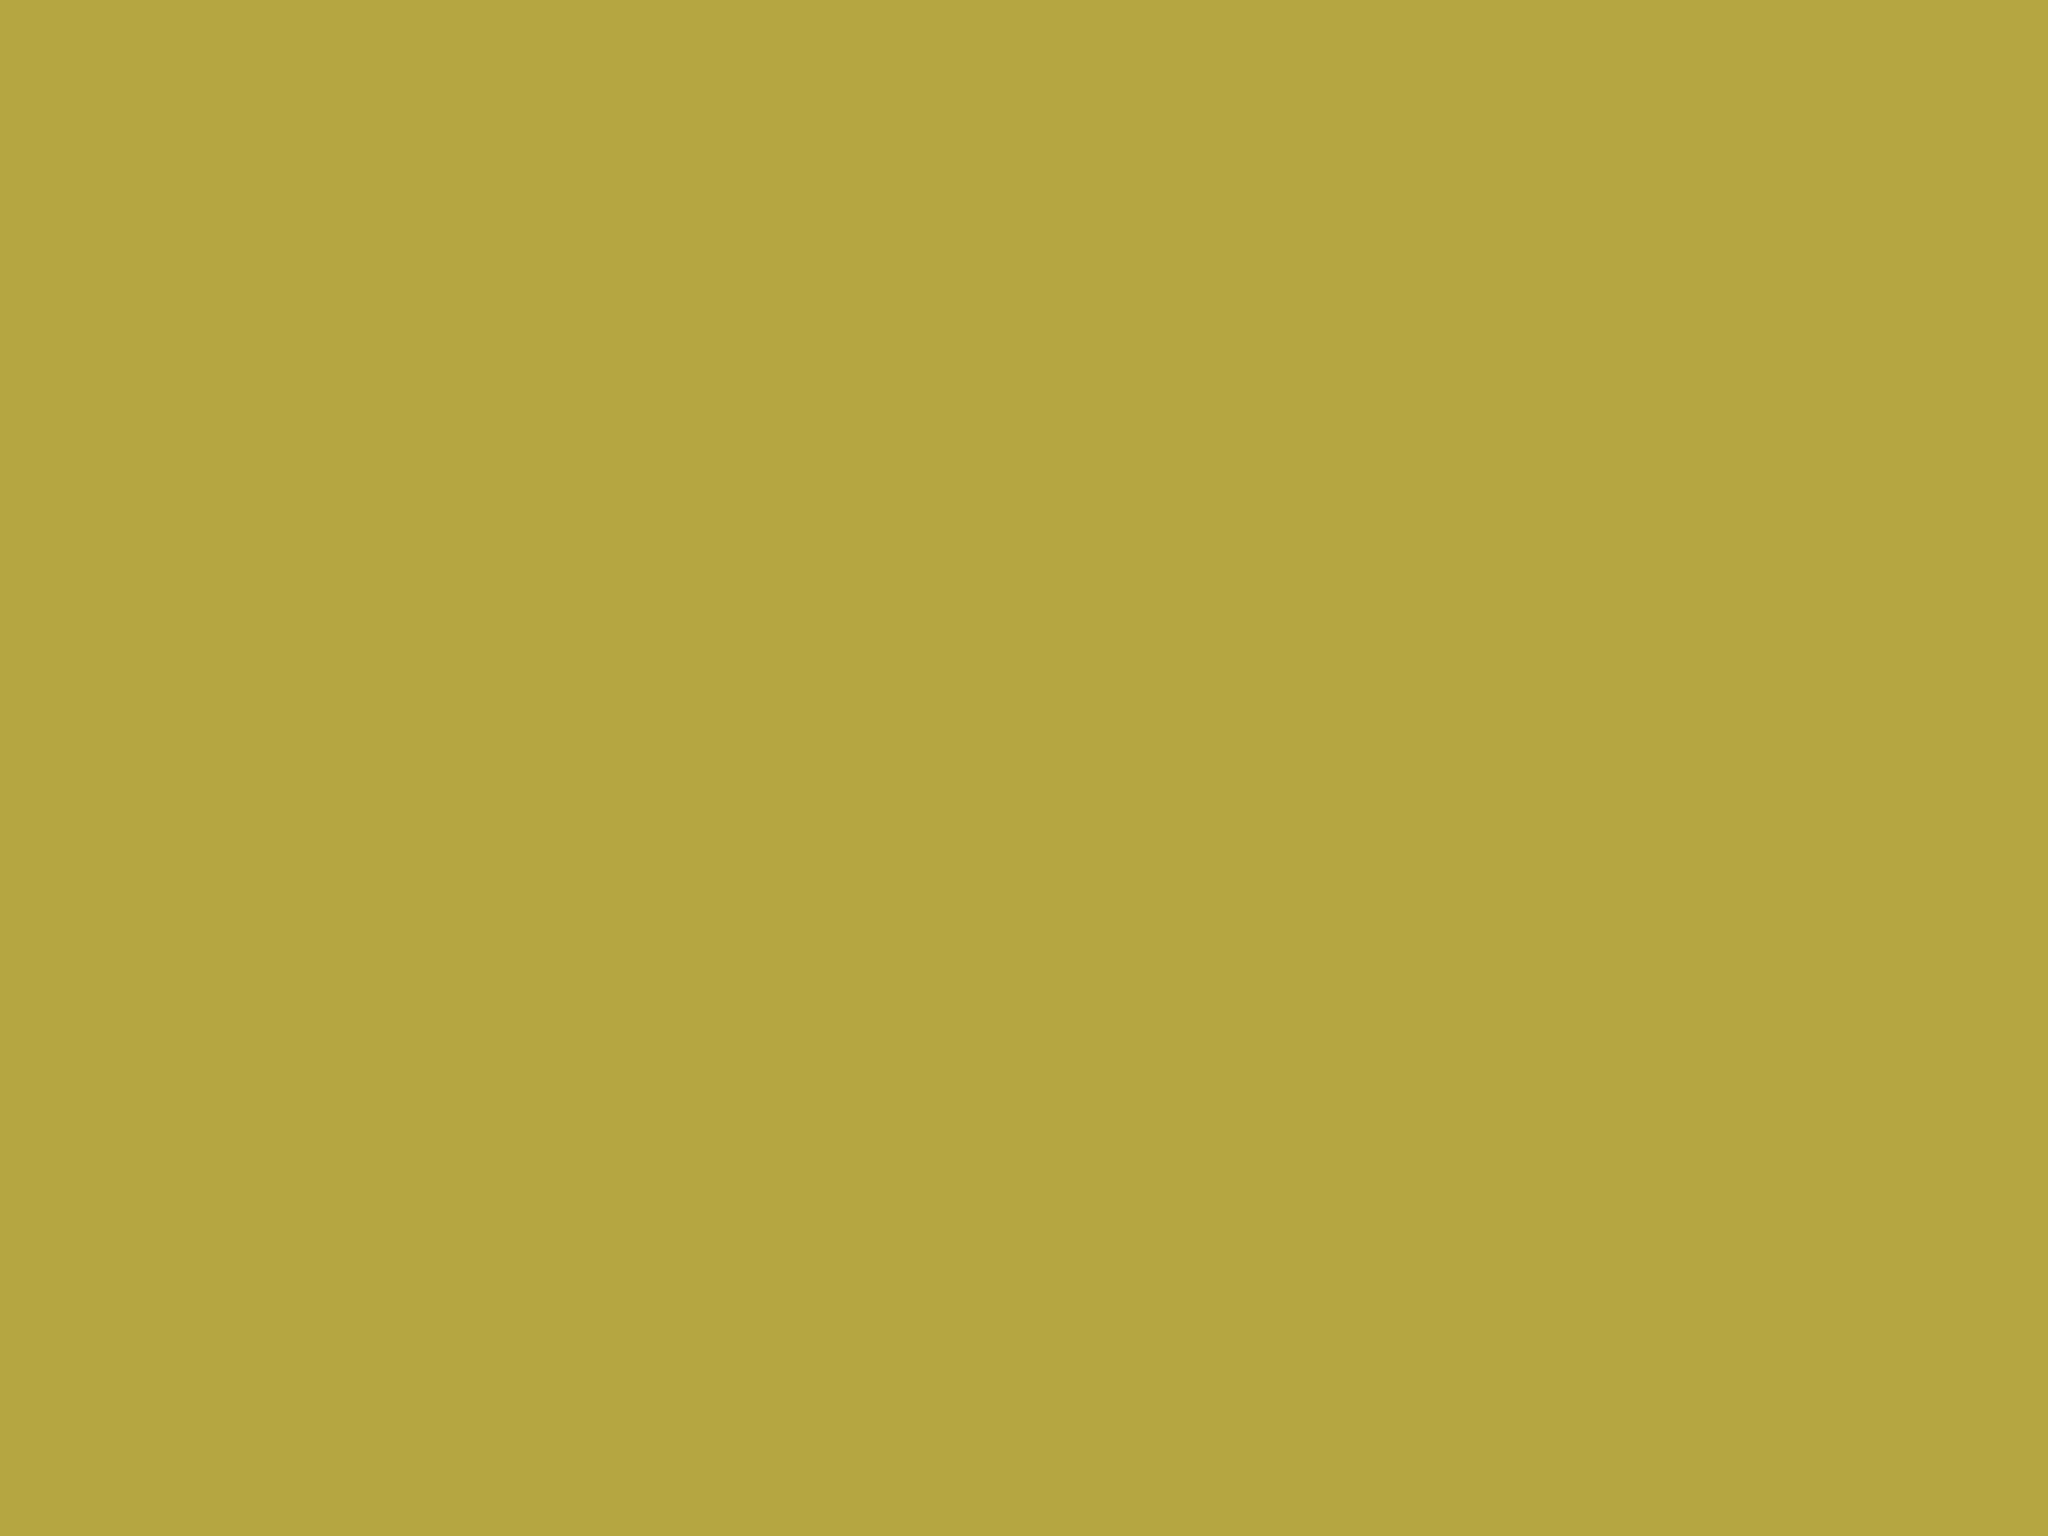 2048x1536 Brass Solid Color Background